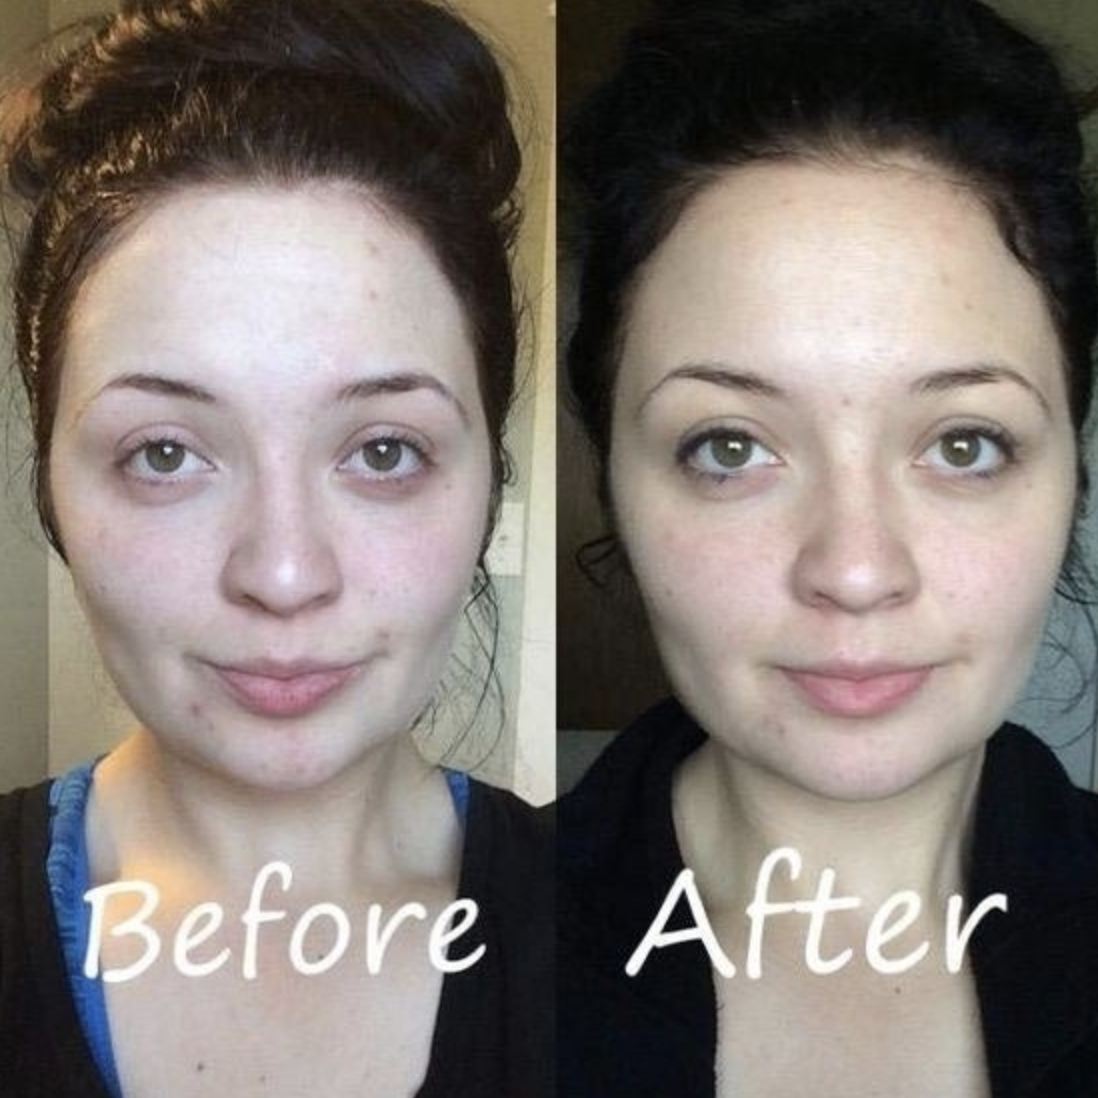 On the left, a woman's face before using the toner spray. On the right, the same woman's face after using the toner spray